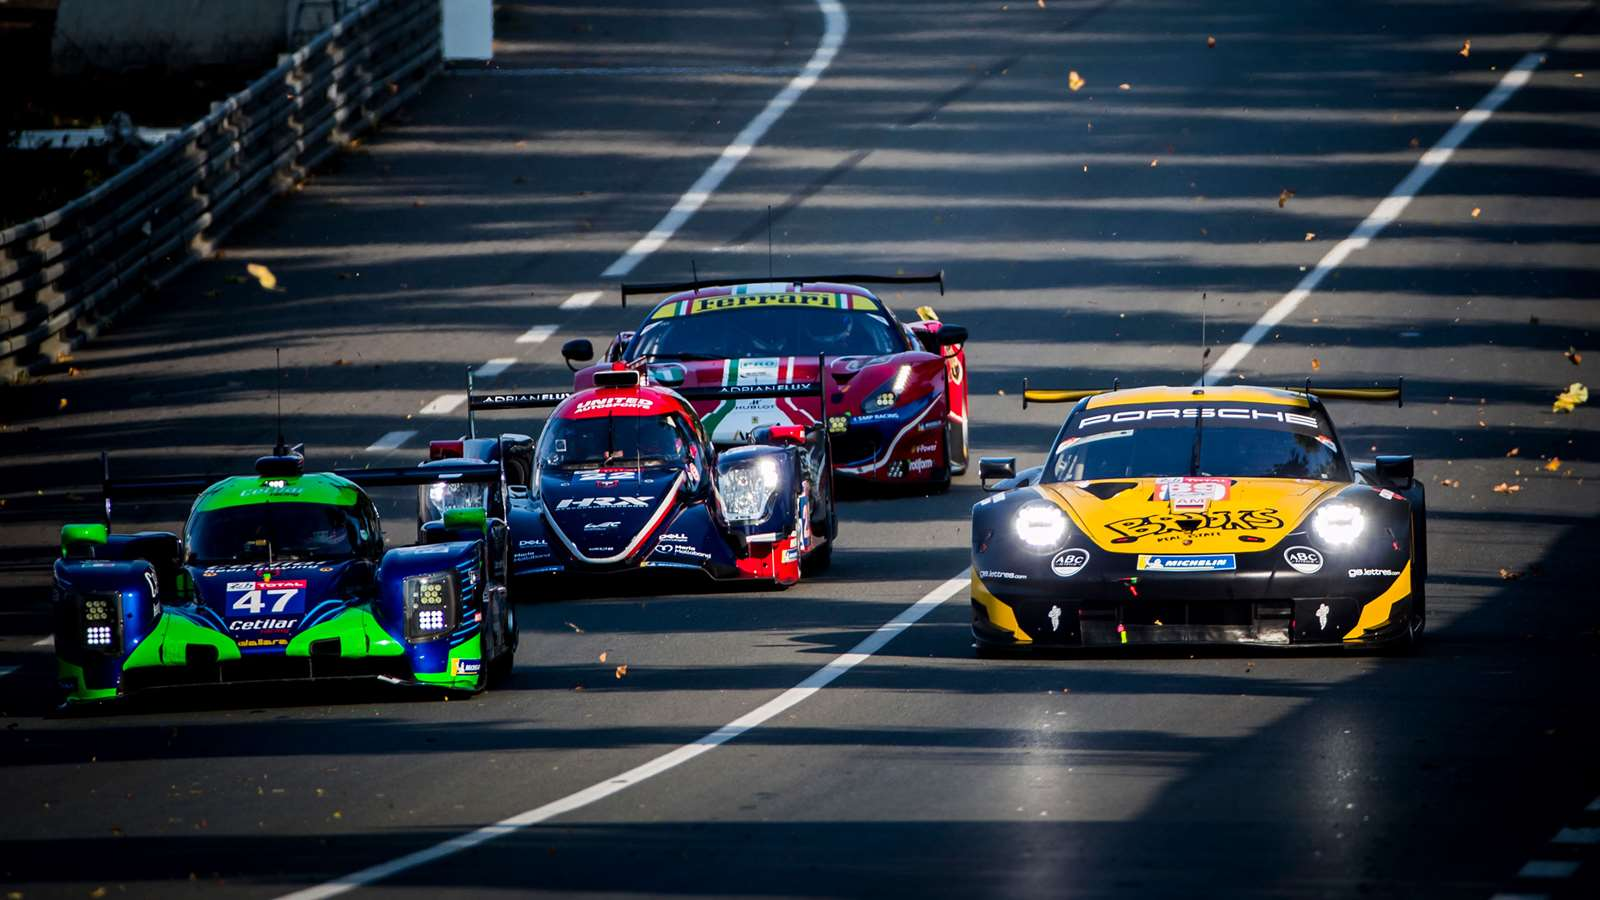 Calendar Same As 2021 2021 WEC Calendar – six races for first Hypercar season | GRR